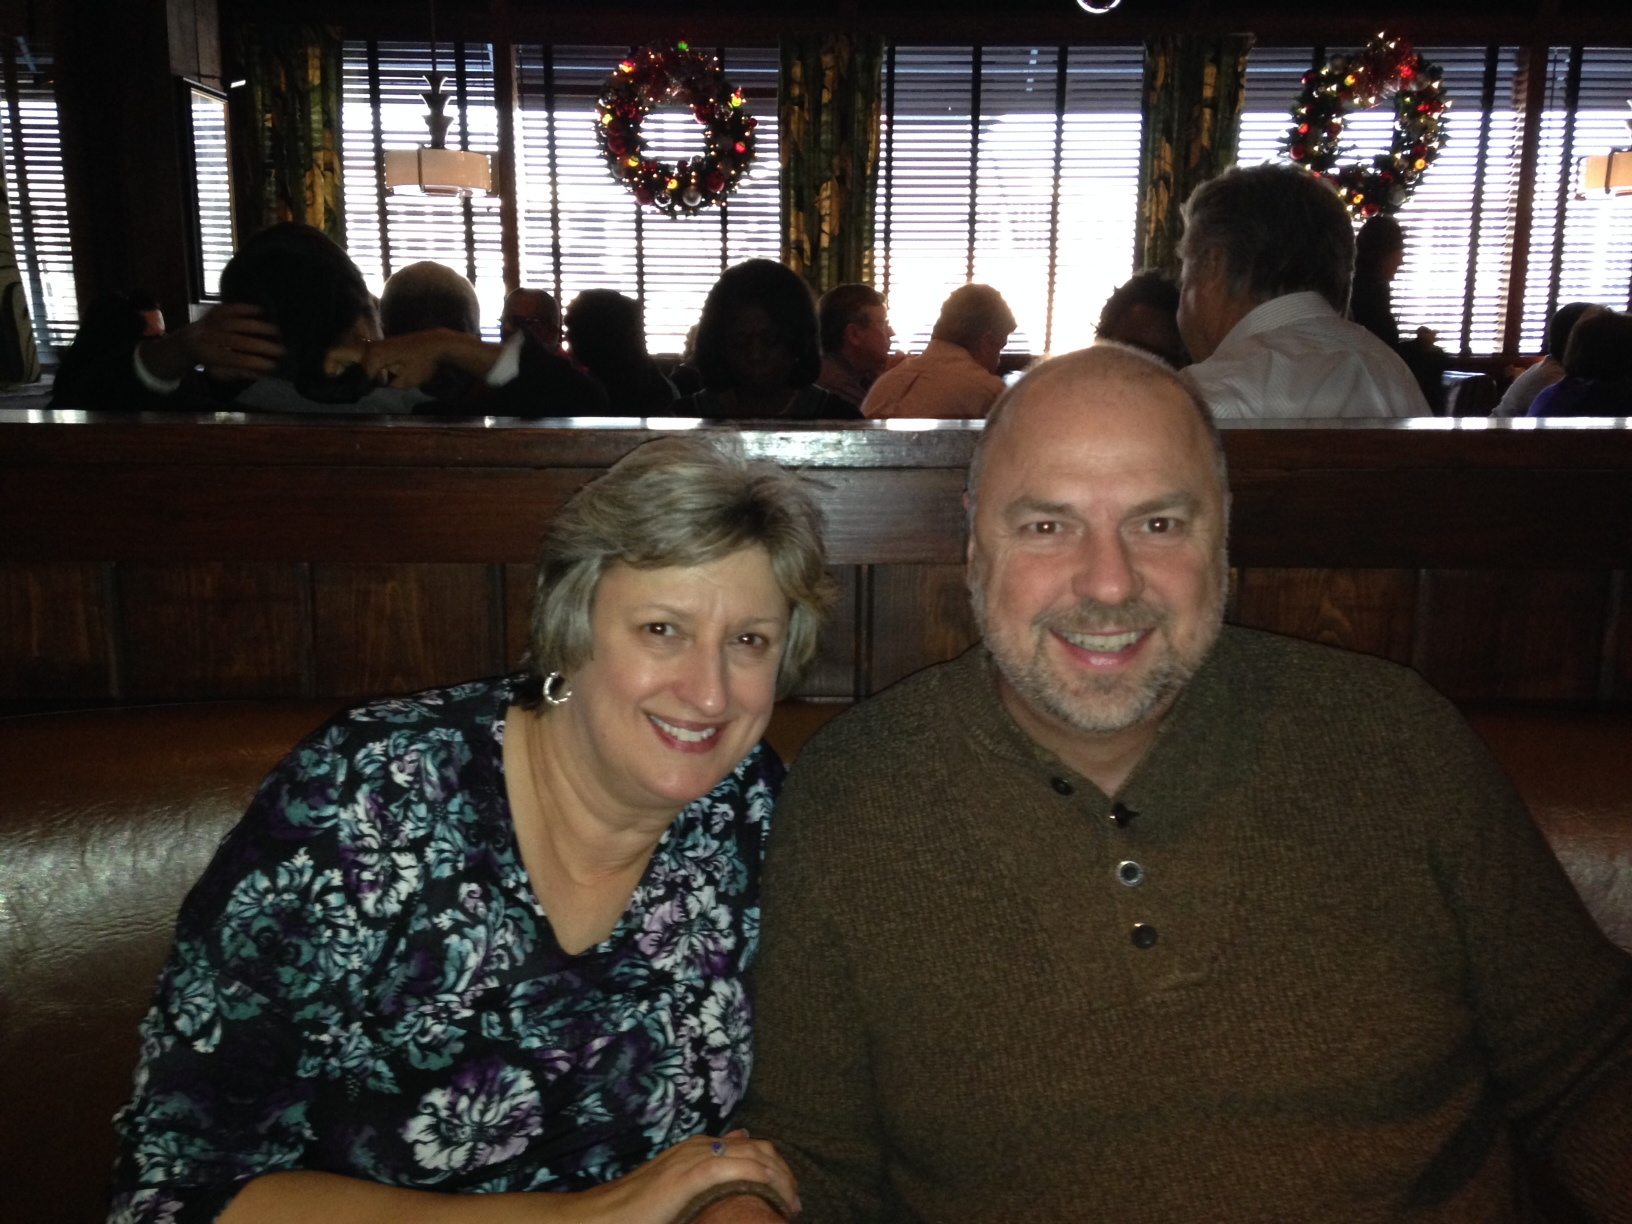 Wildfire - Oakbrook, IL - Jim and Nancy - Dec 2013